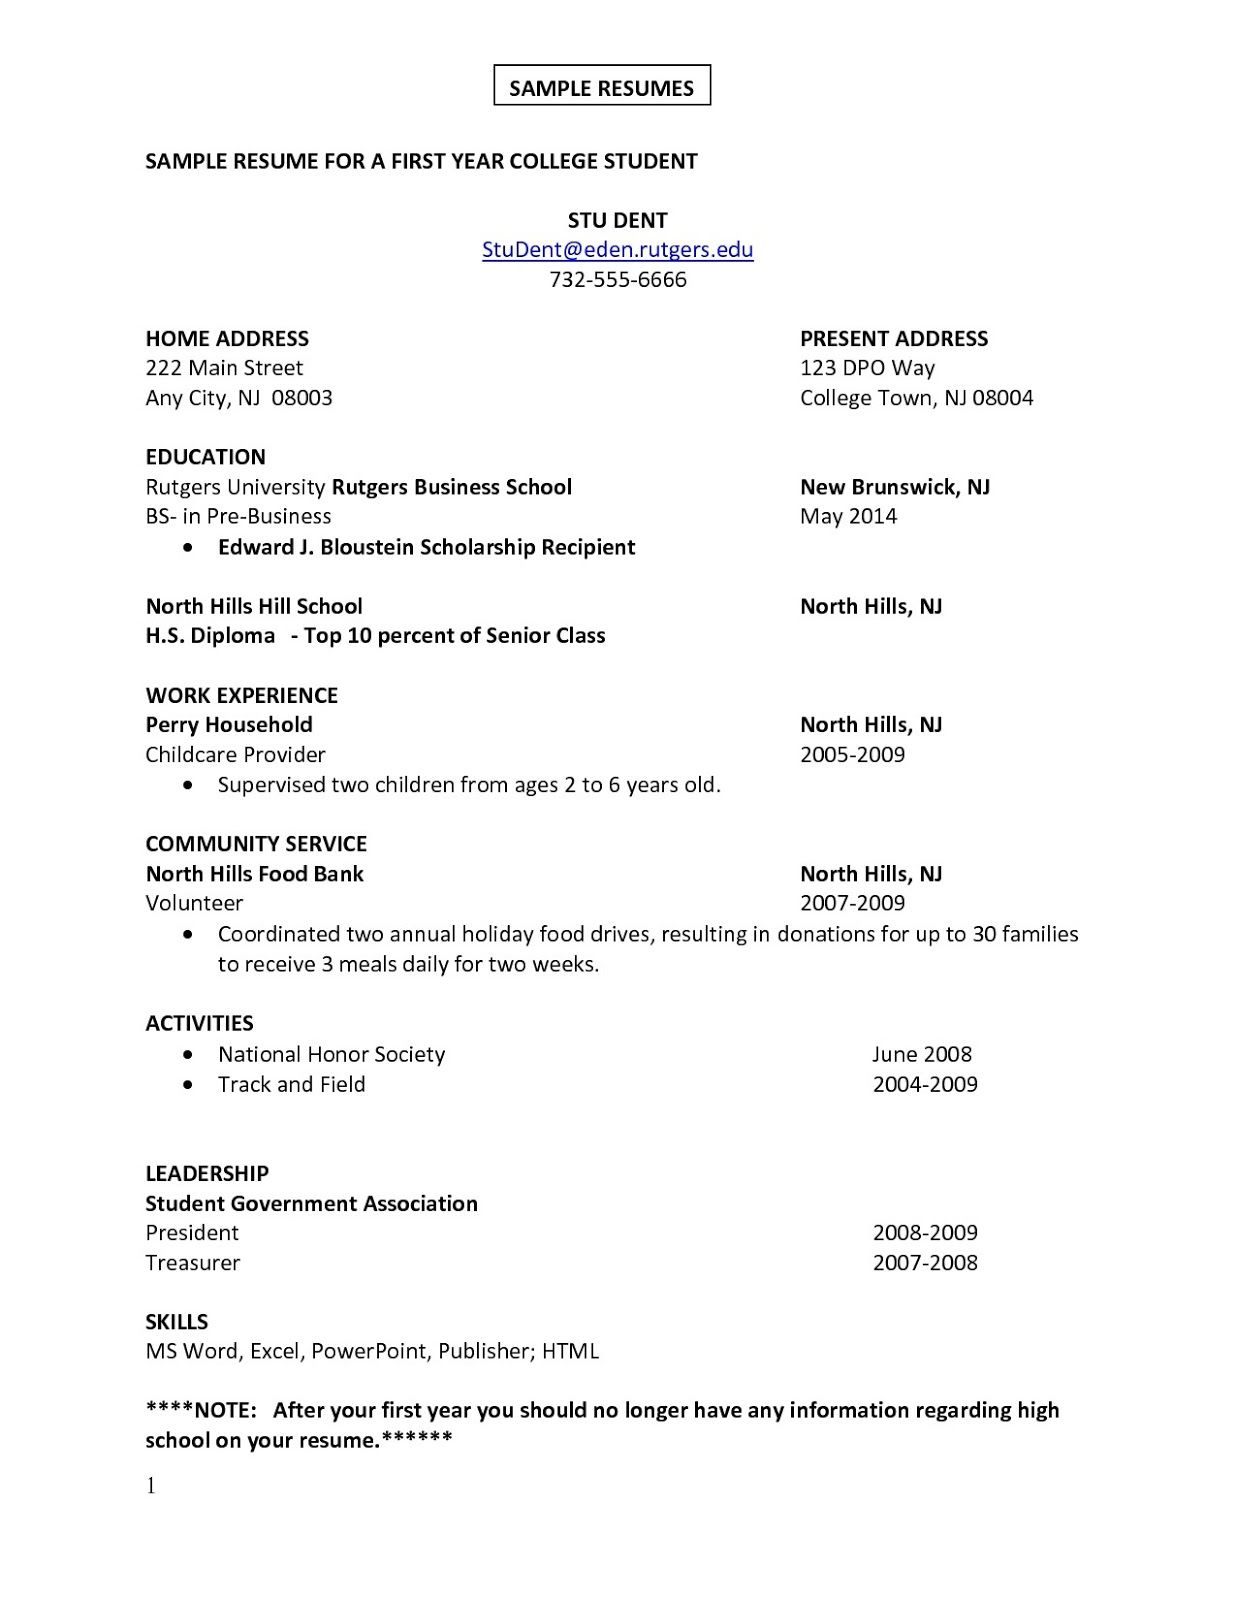 Resume Templates For College Students First Job Sample Resume  Sample Resumes  Sample Resumes